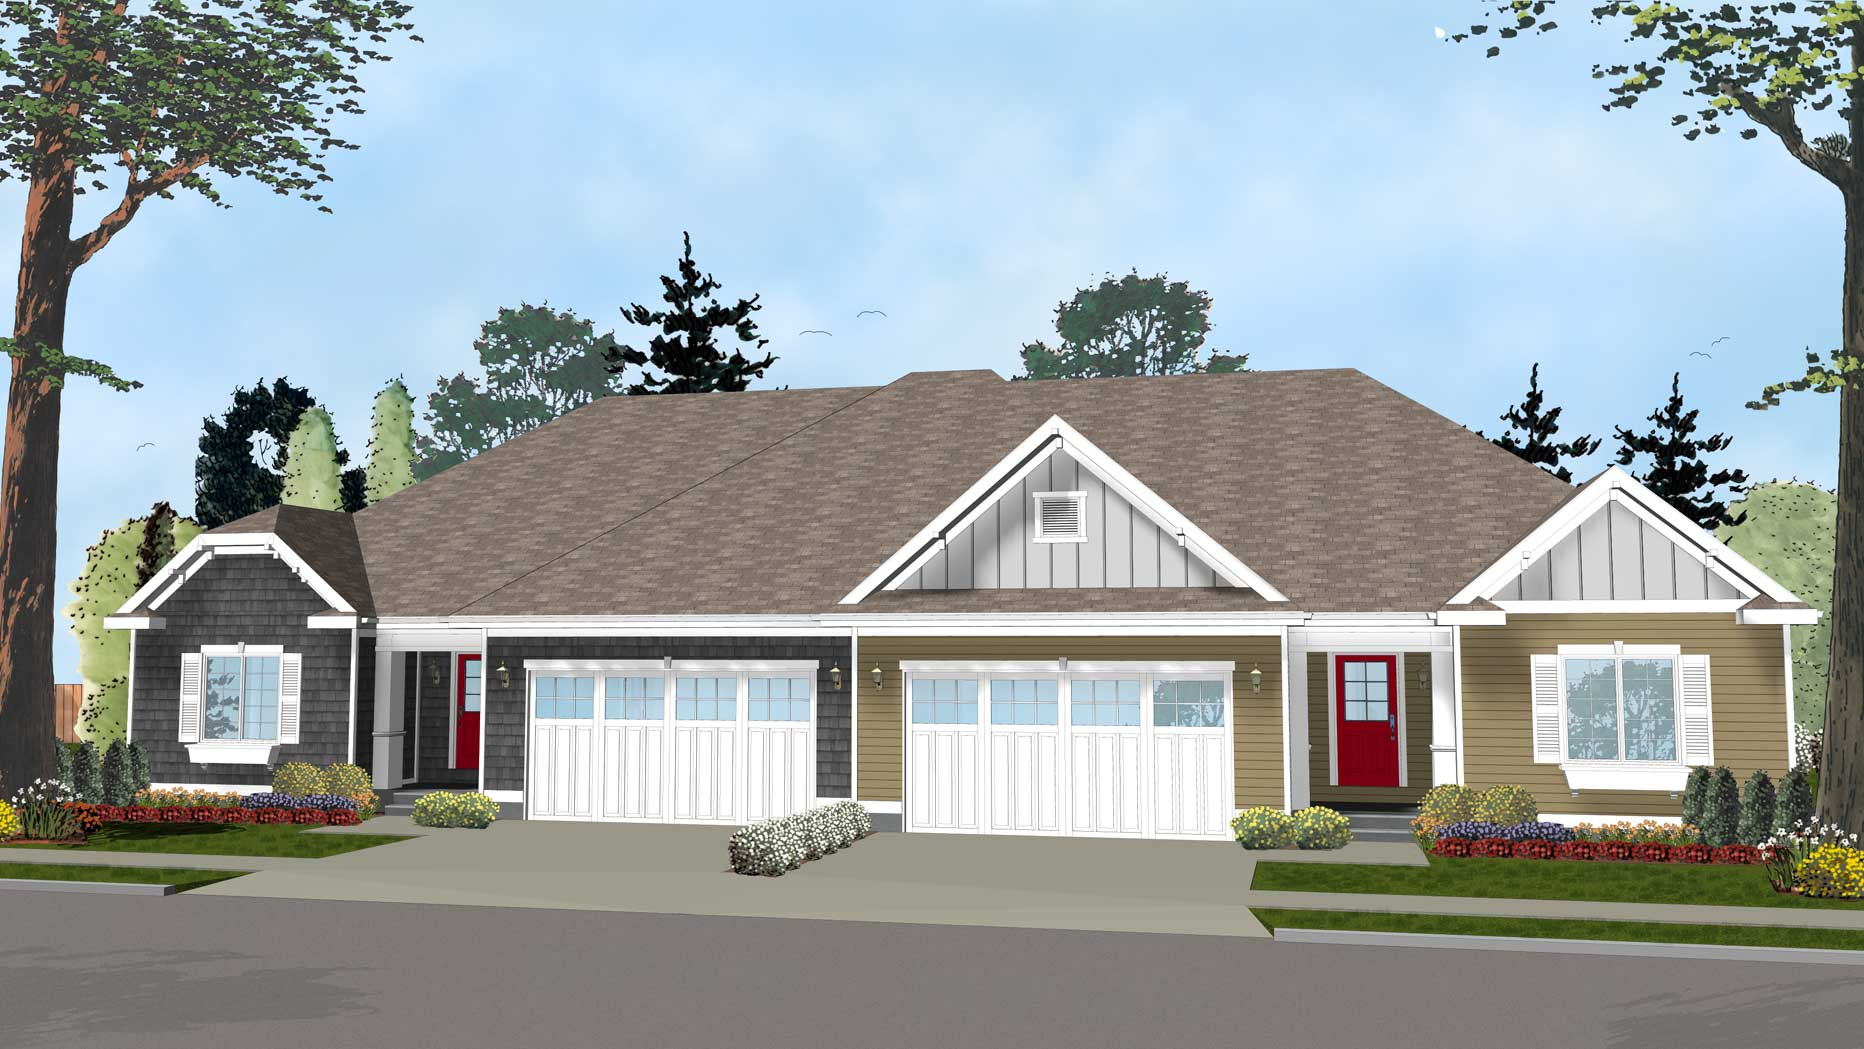 Easy to build duplex house plan 62562dj architectural for Duplex cottage plans